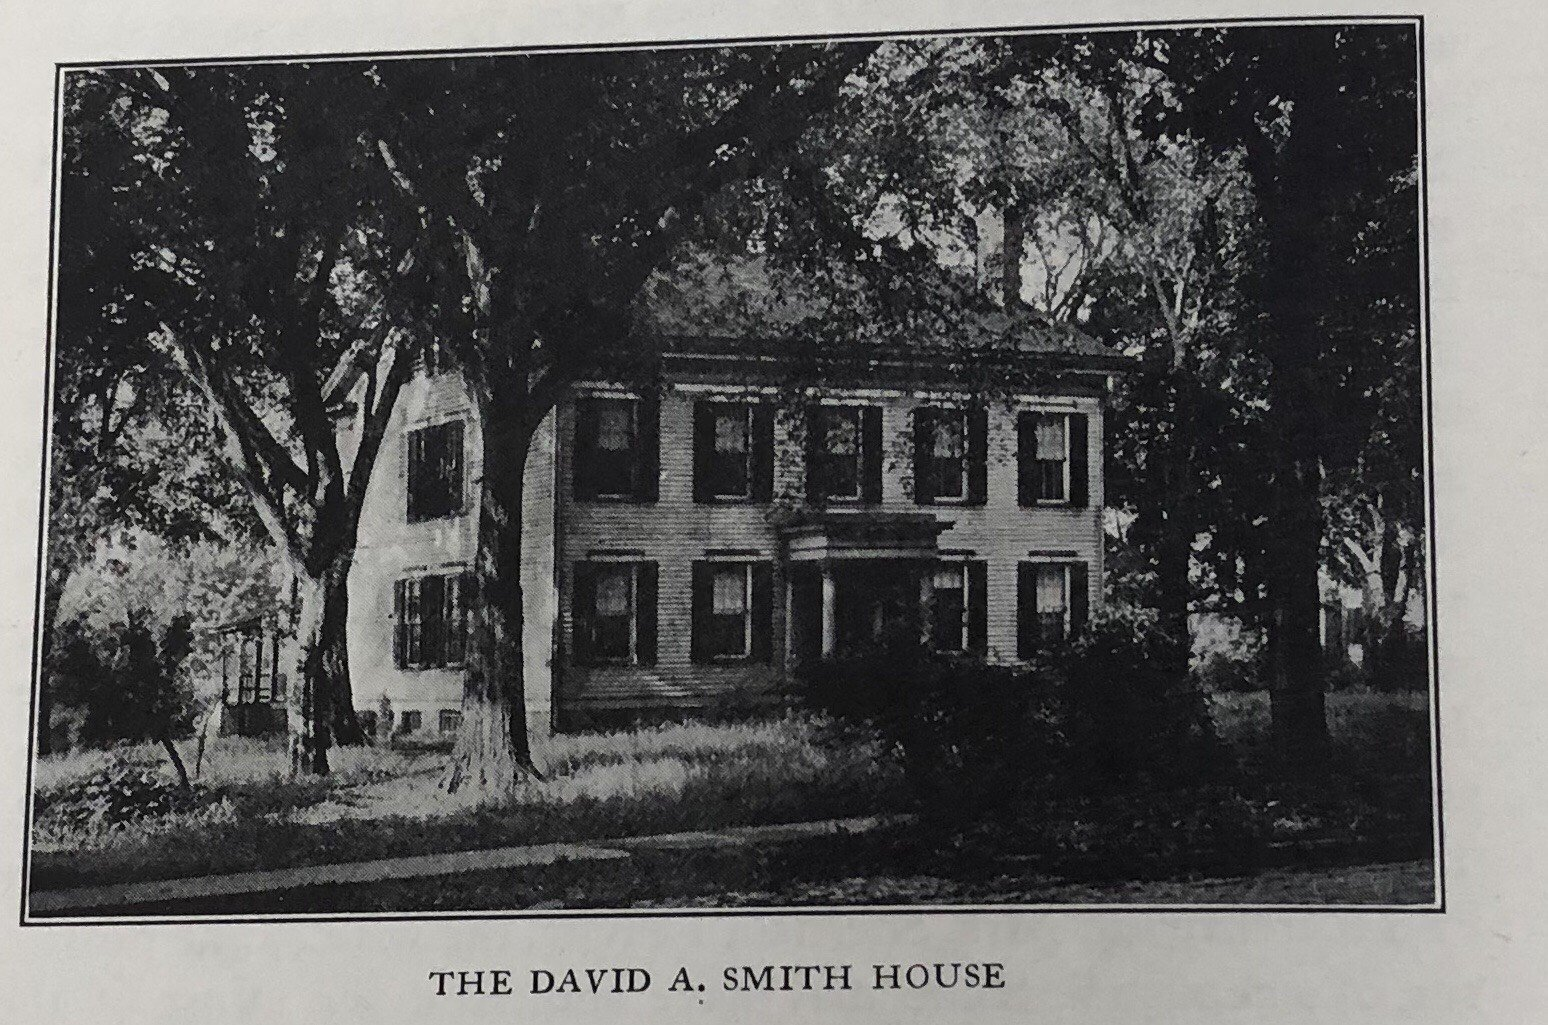 An old photo of the David A. Smith house.